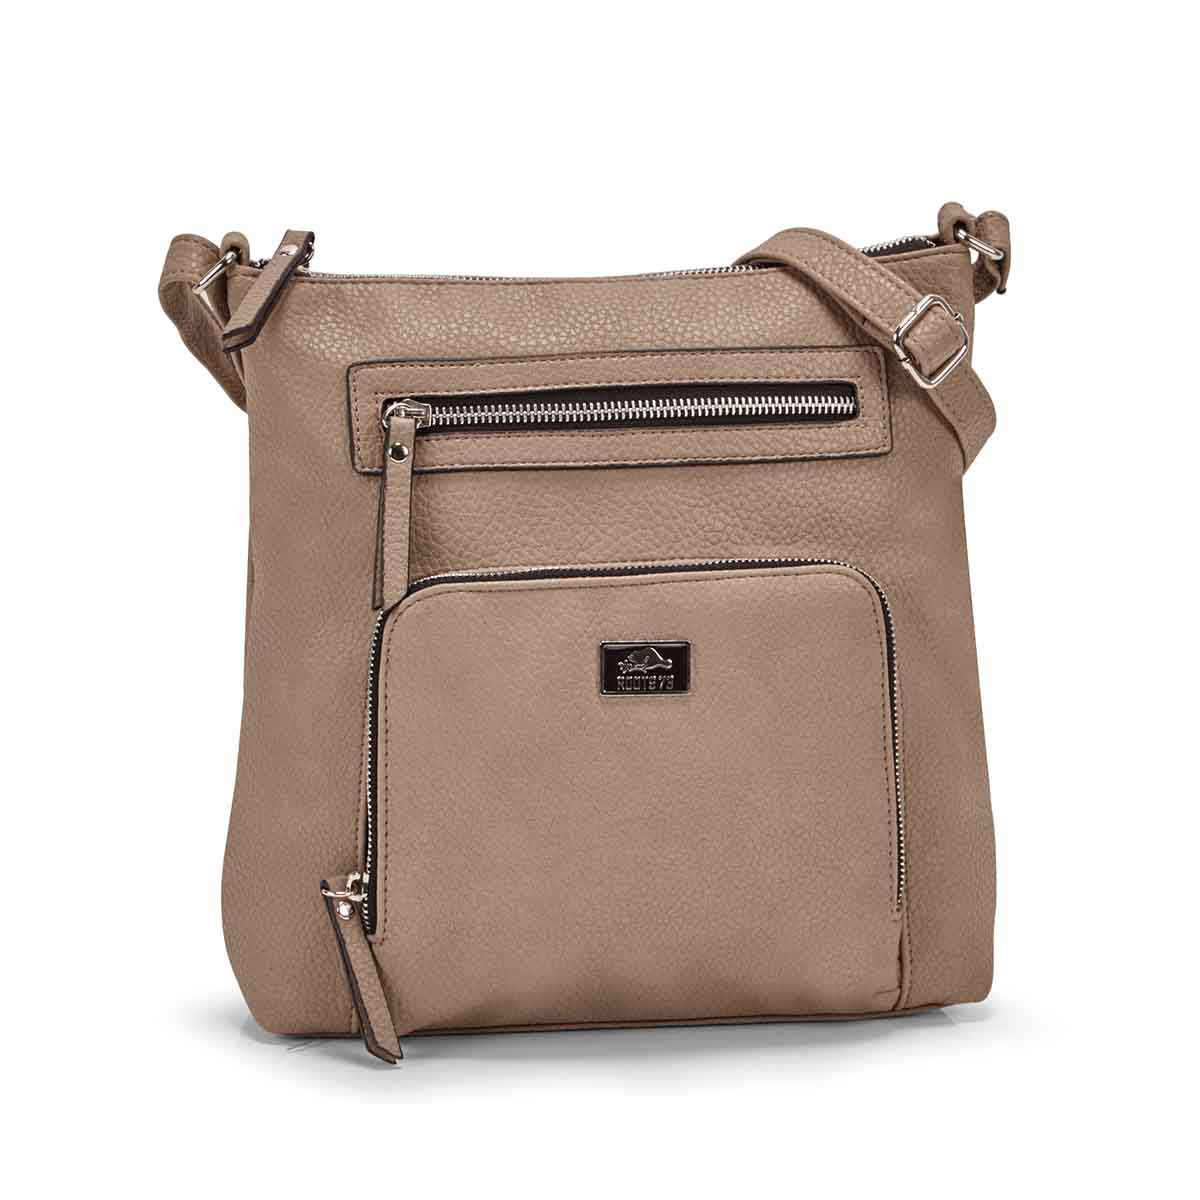 Women's R5387 taupe NORTH/SOUTH crossbody bag